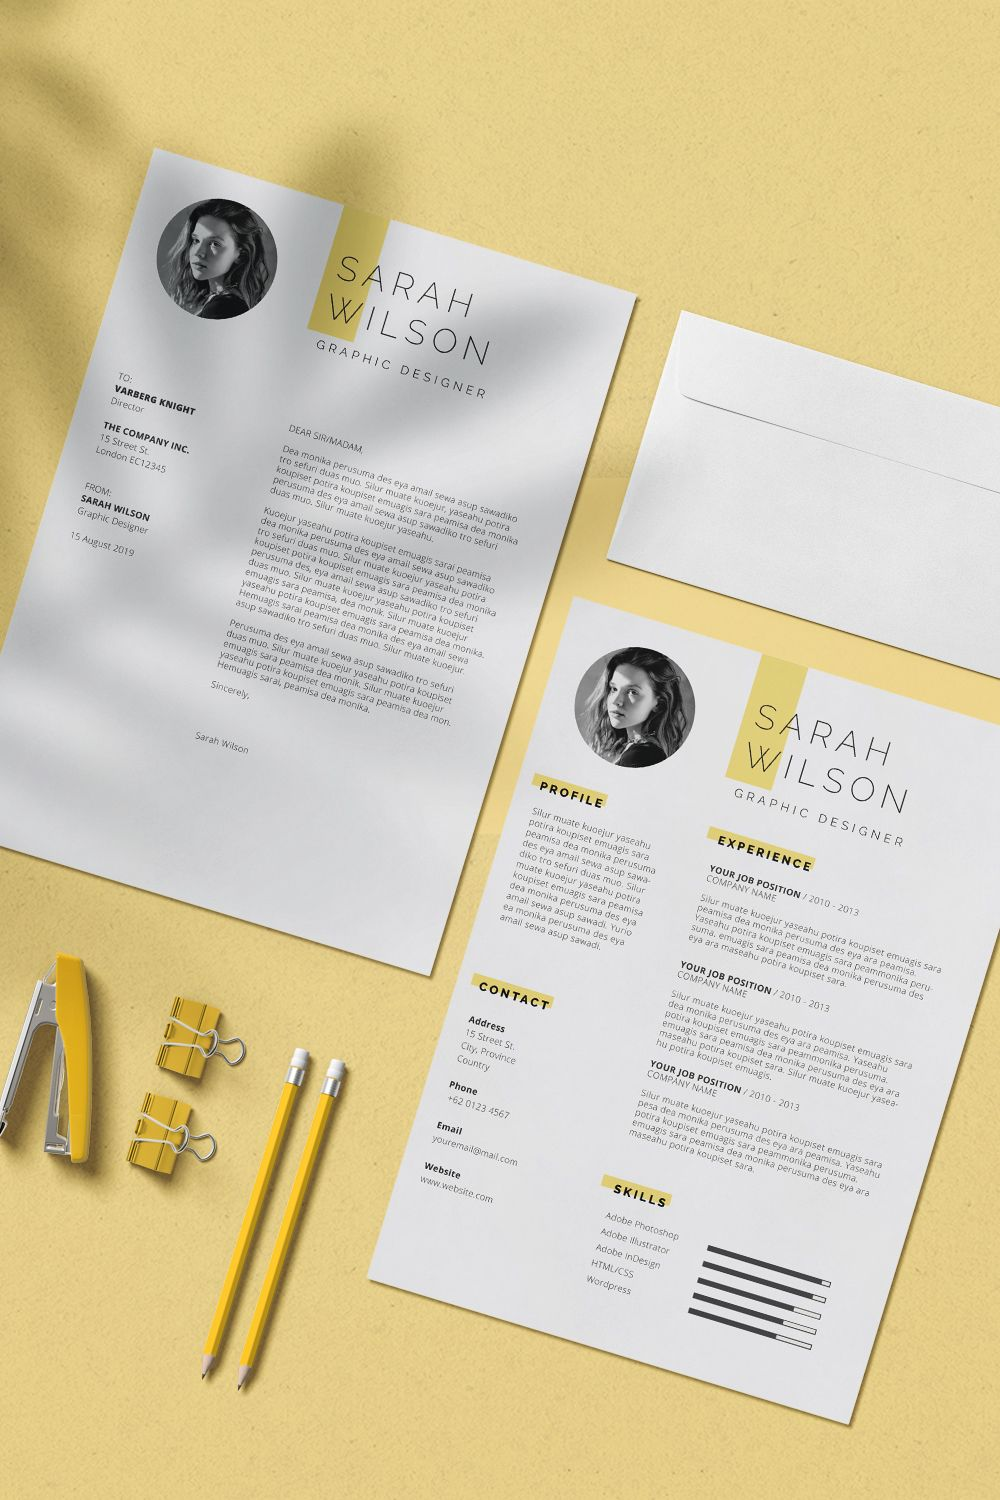 Professional Resume Template For Microsoft Word With Cover Letter Resume Template With Photo Simple Resume Template Cv Template Resume Template Simple Resume Template Resume Template Professional